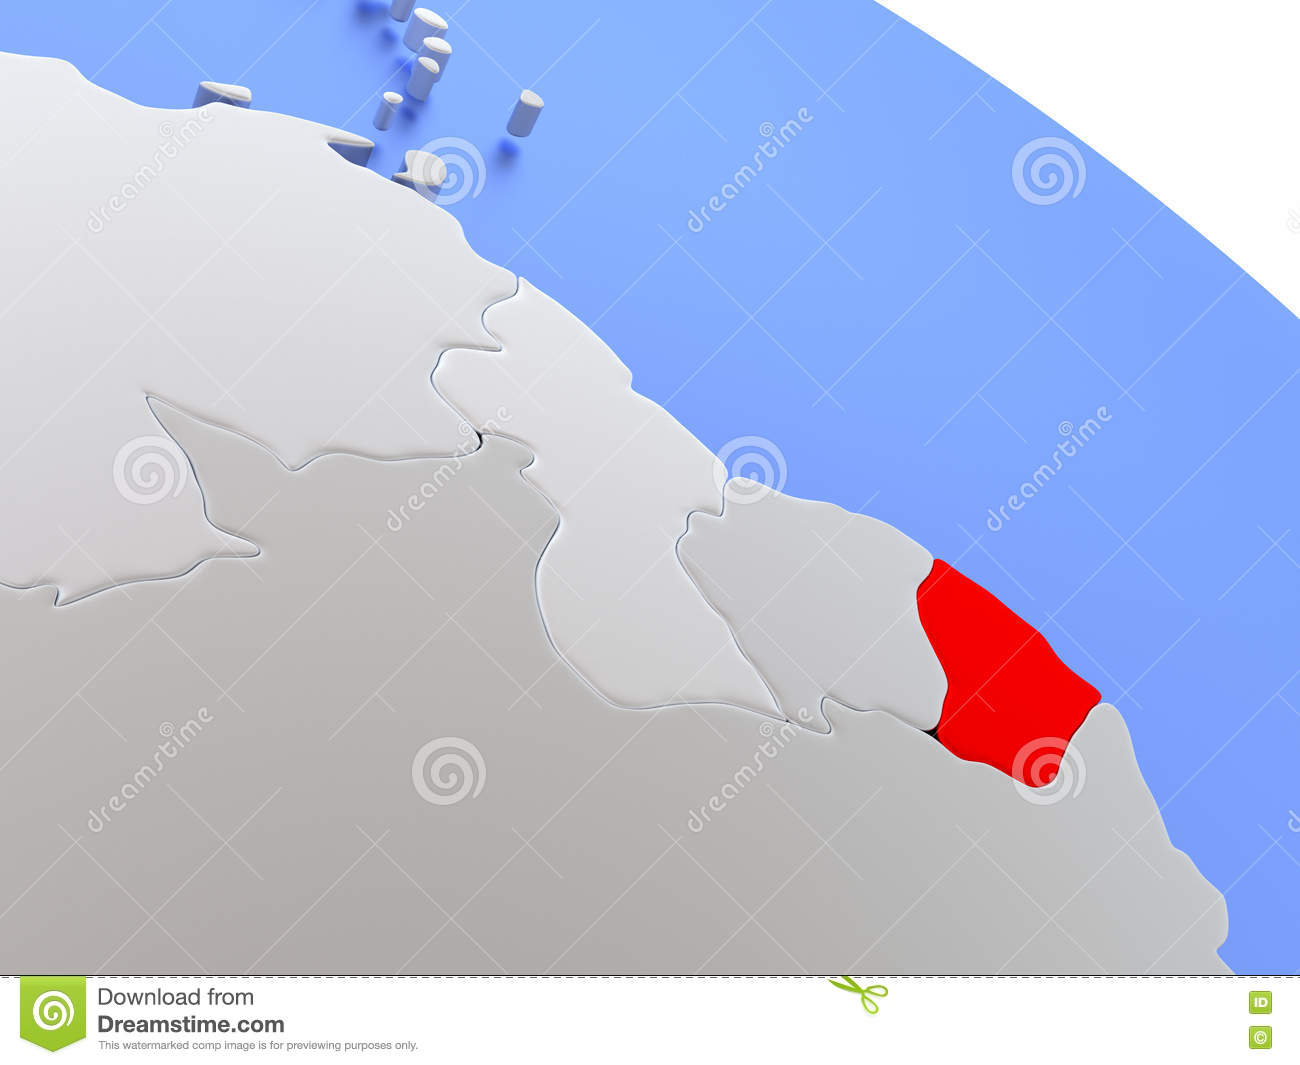 French Guiana On World Map Stock Illustration Image Of Country - Map of french guiana world